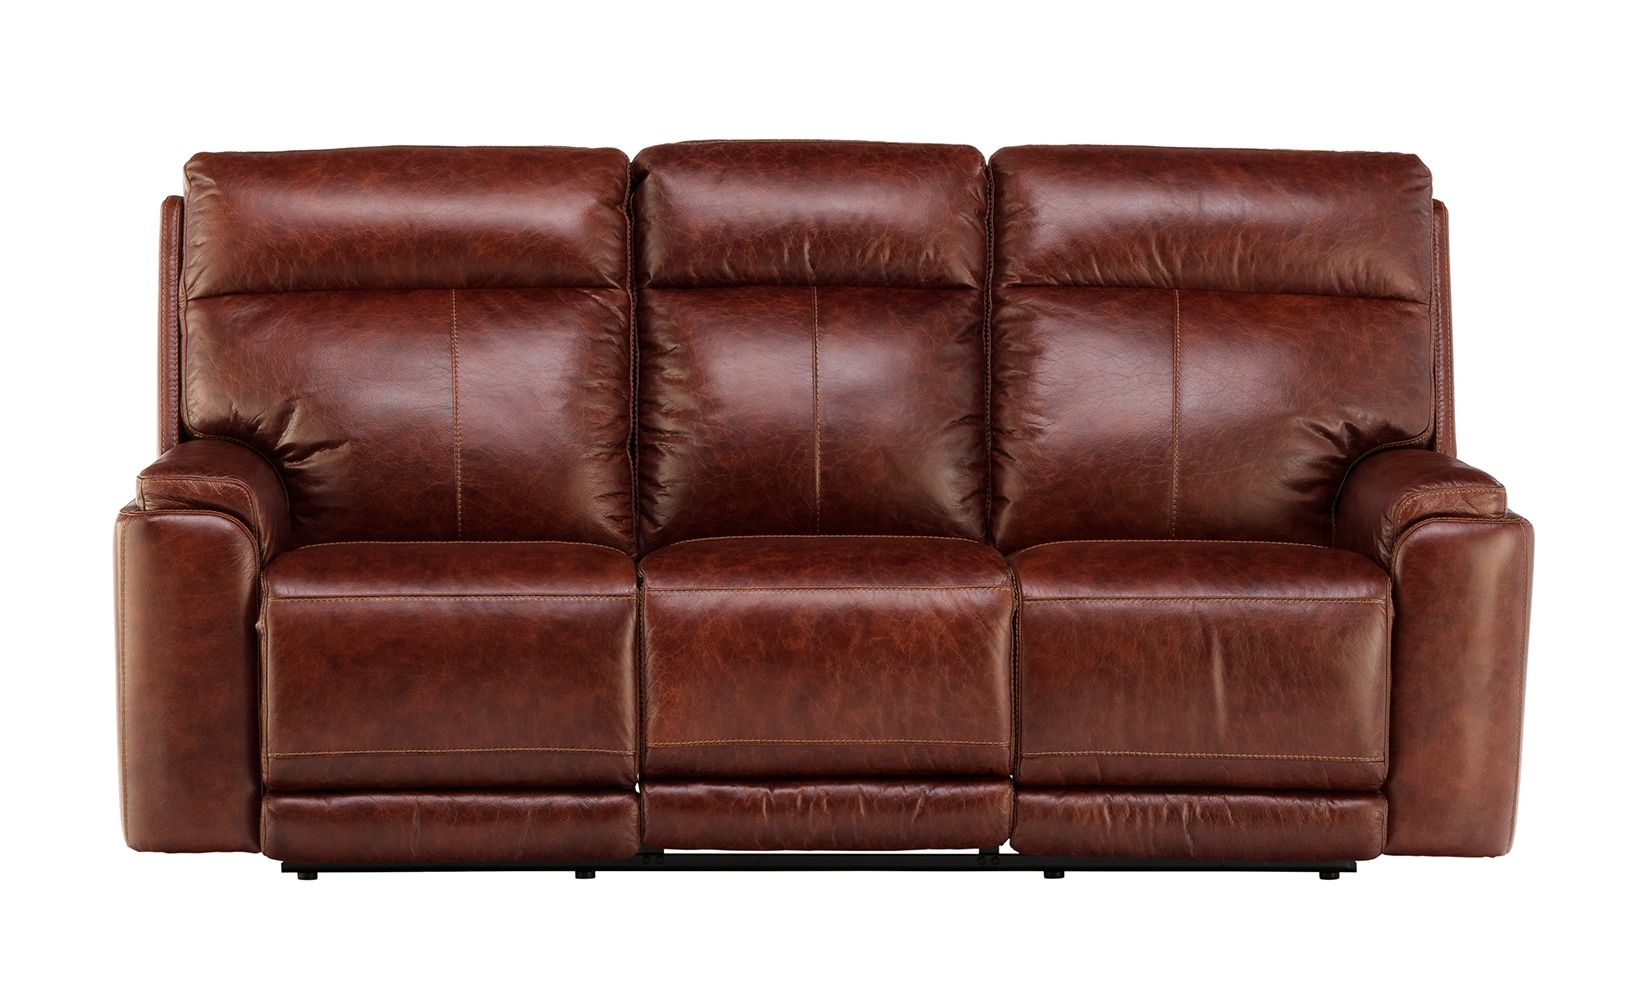 sienna sofa best fabric for slipcover power reclining williams